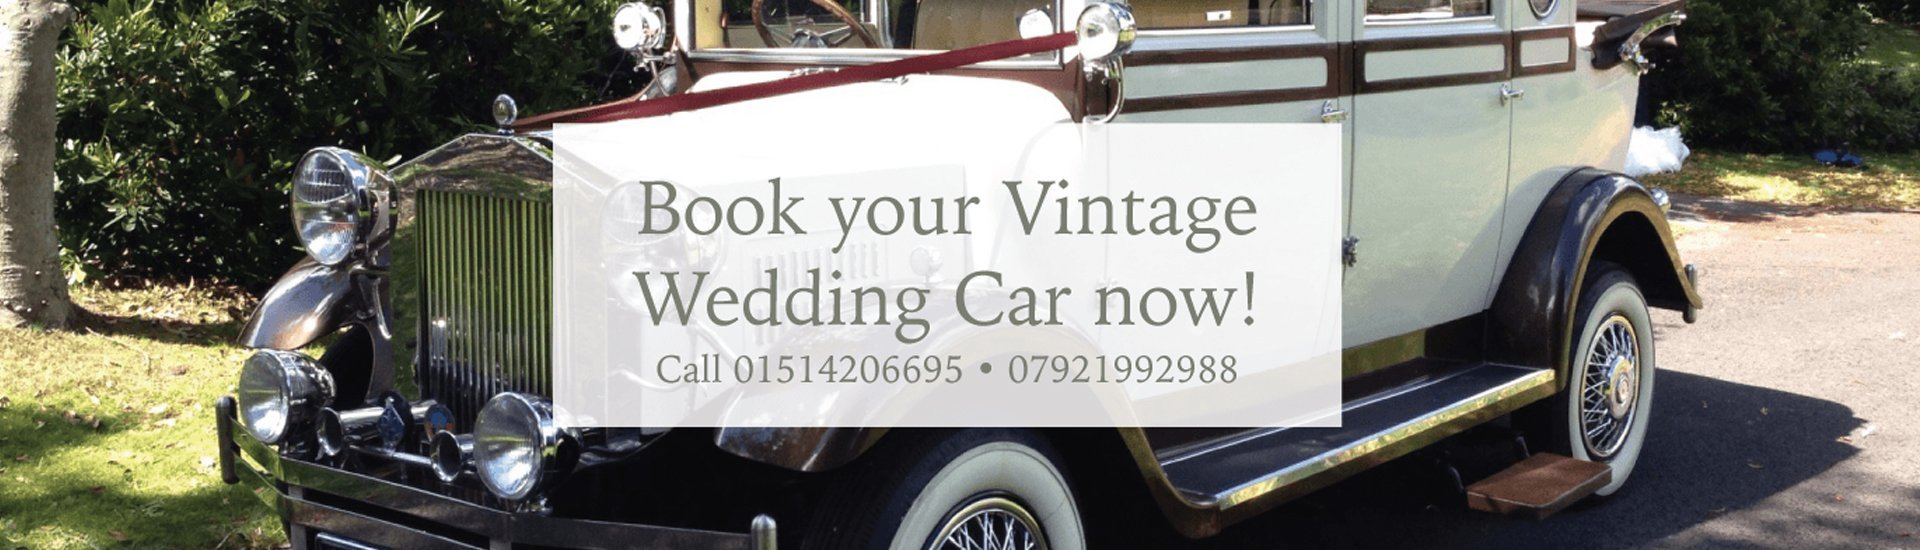 Book your vintage car